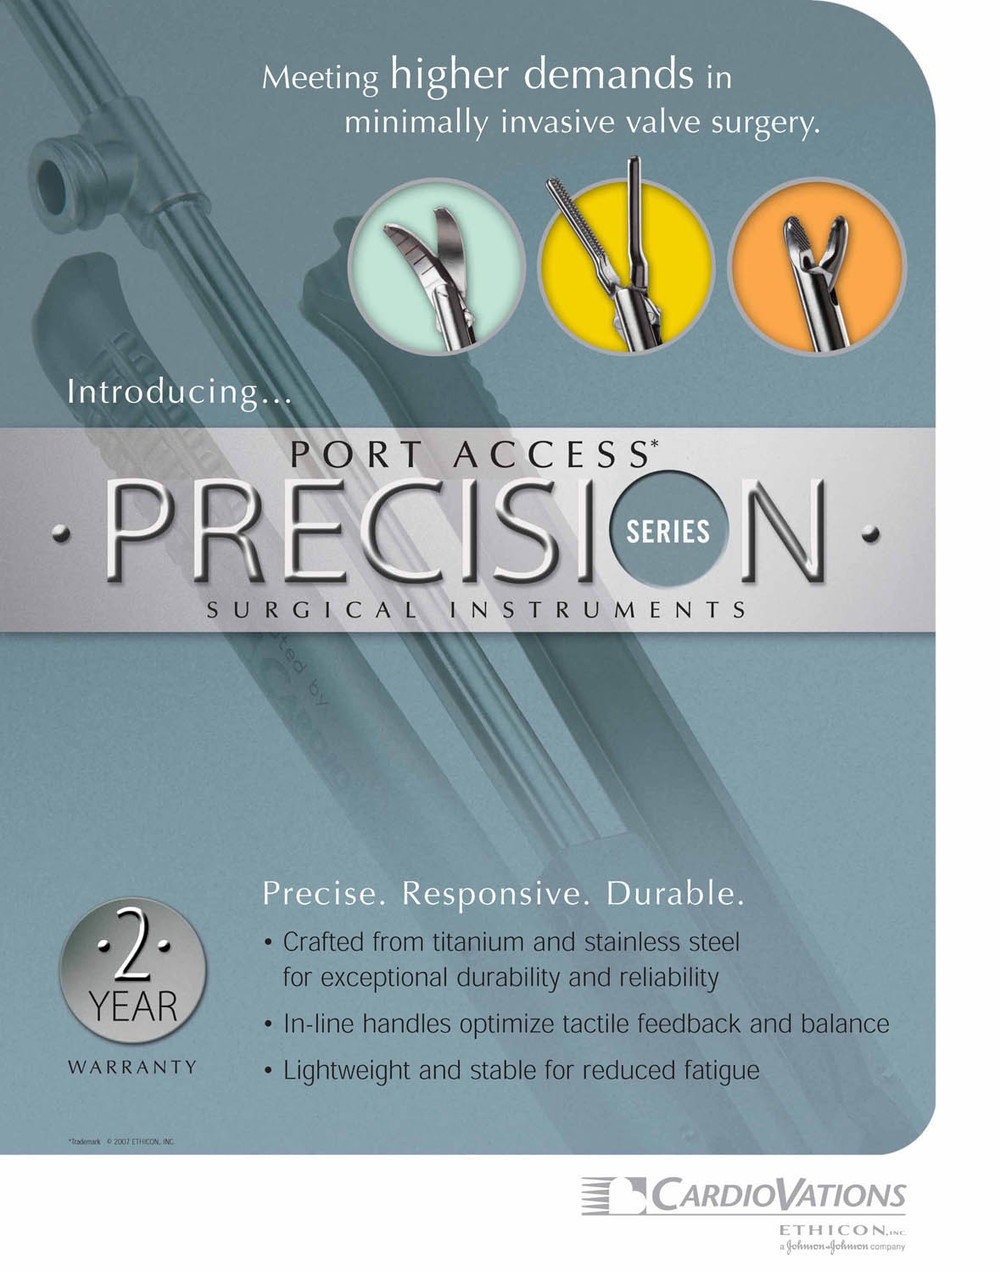 PRECISION launch poster_rev.jpg